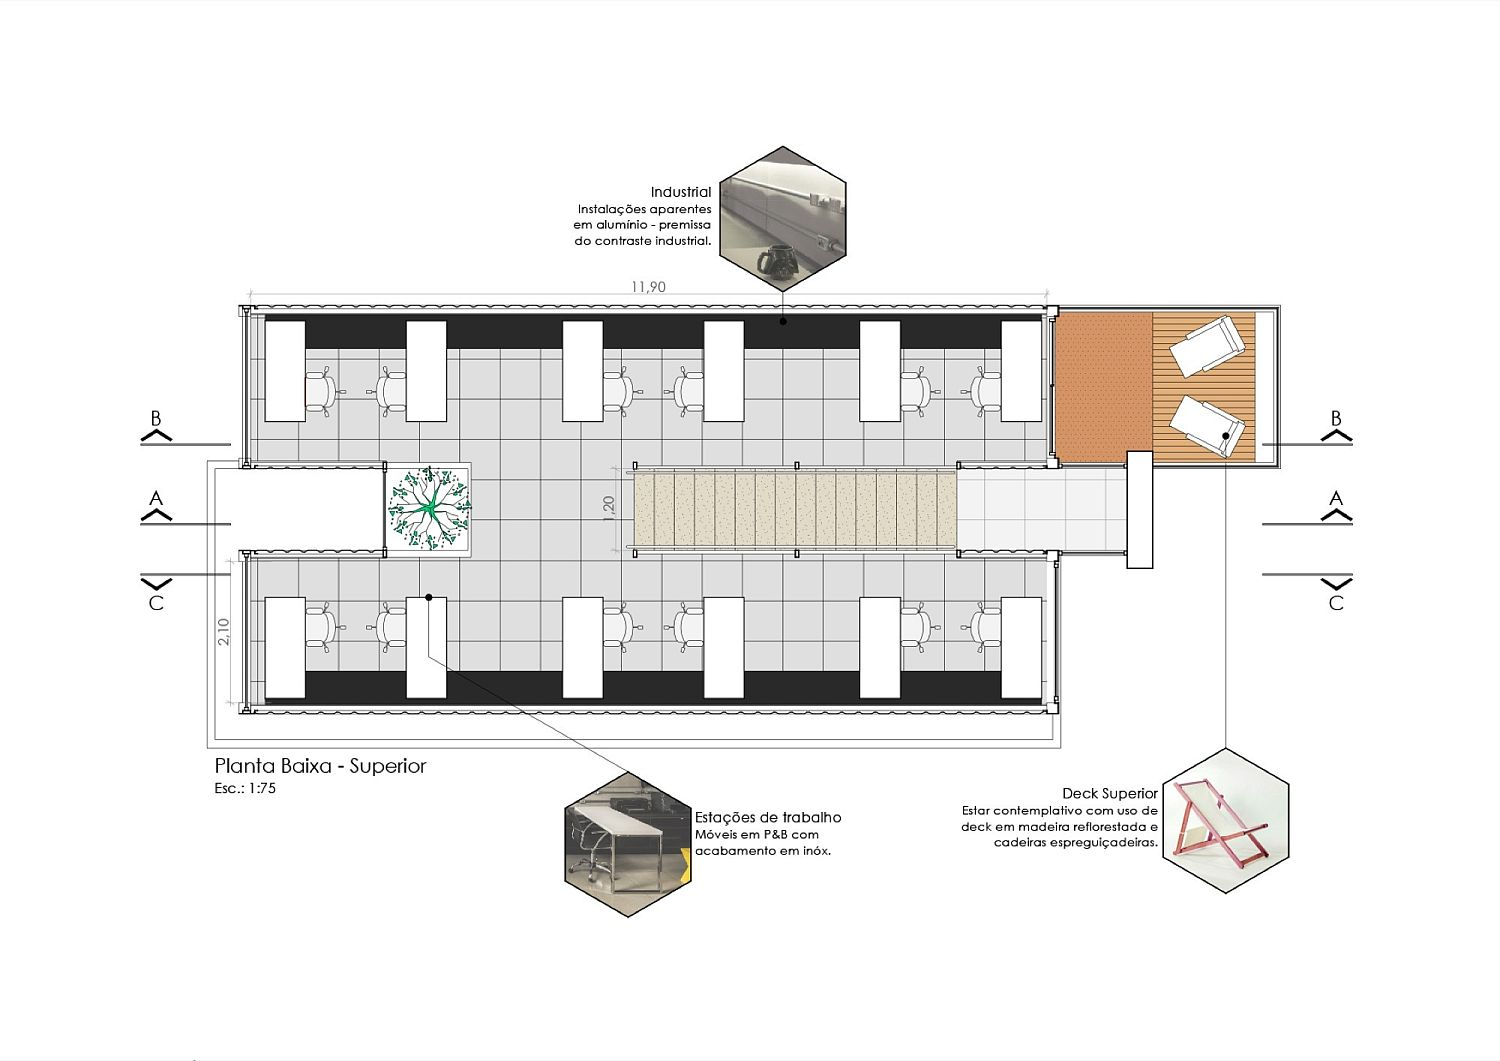 Floor plan of the office space crafted from containers